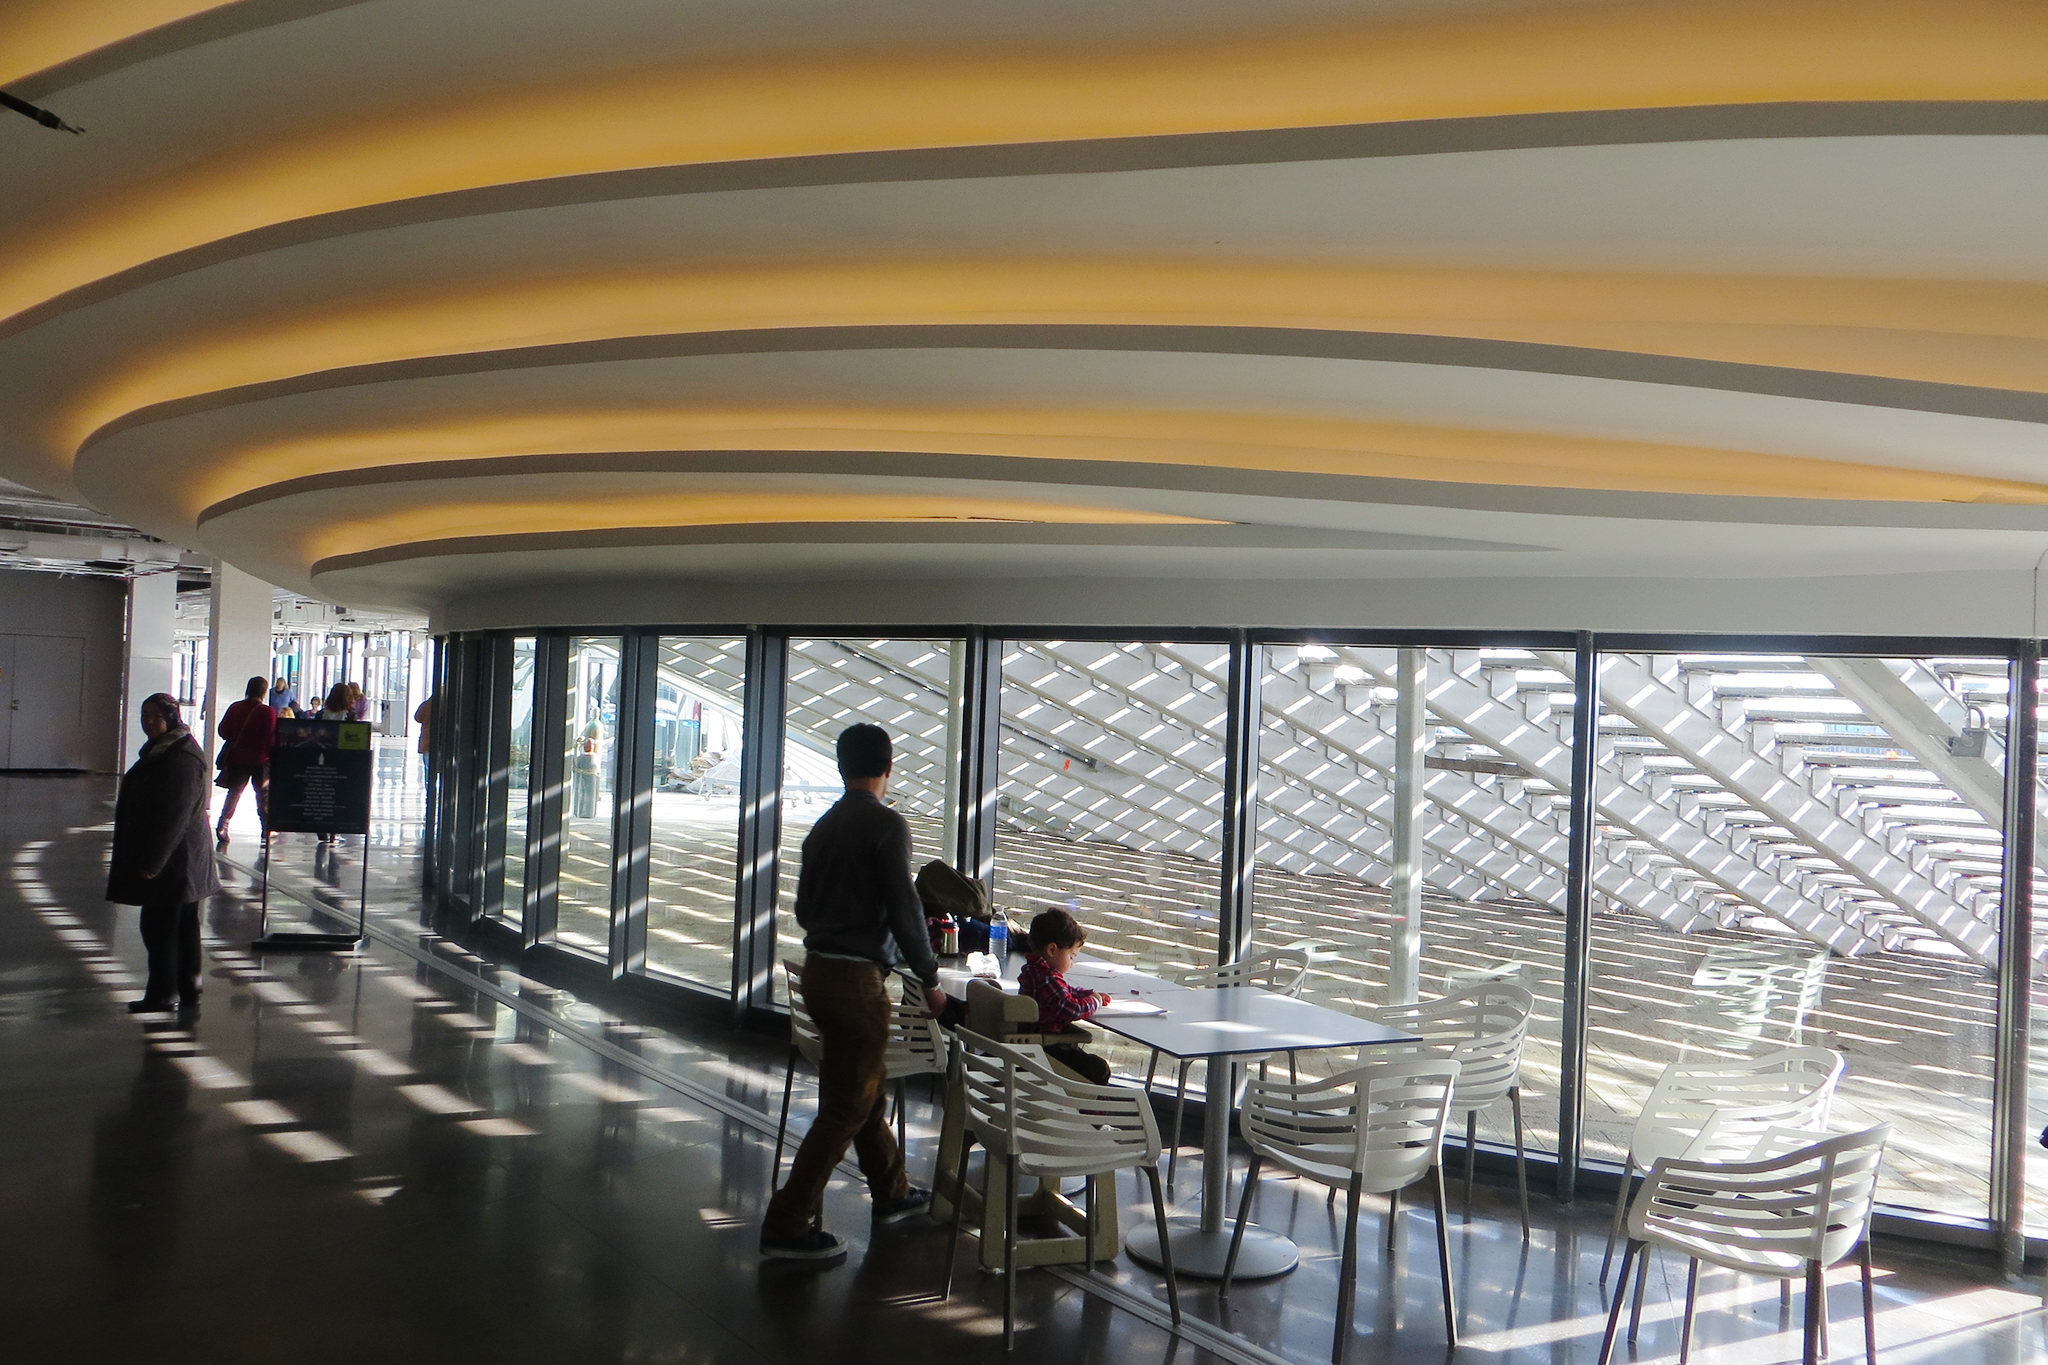 Check out the new food court at Navy Pier